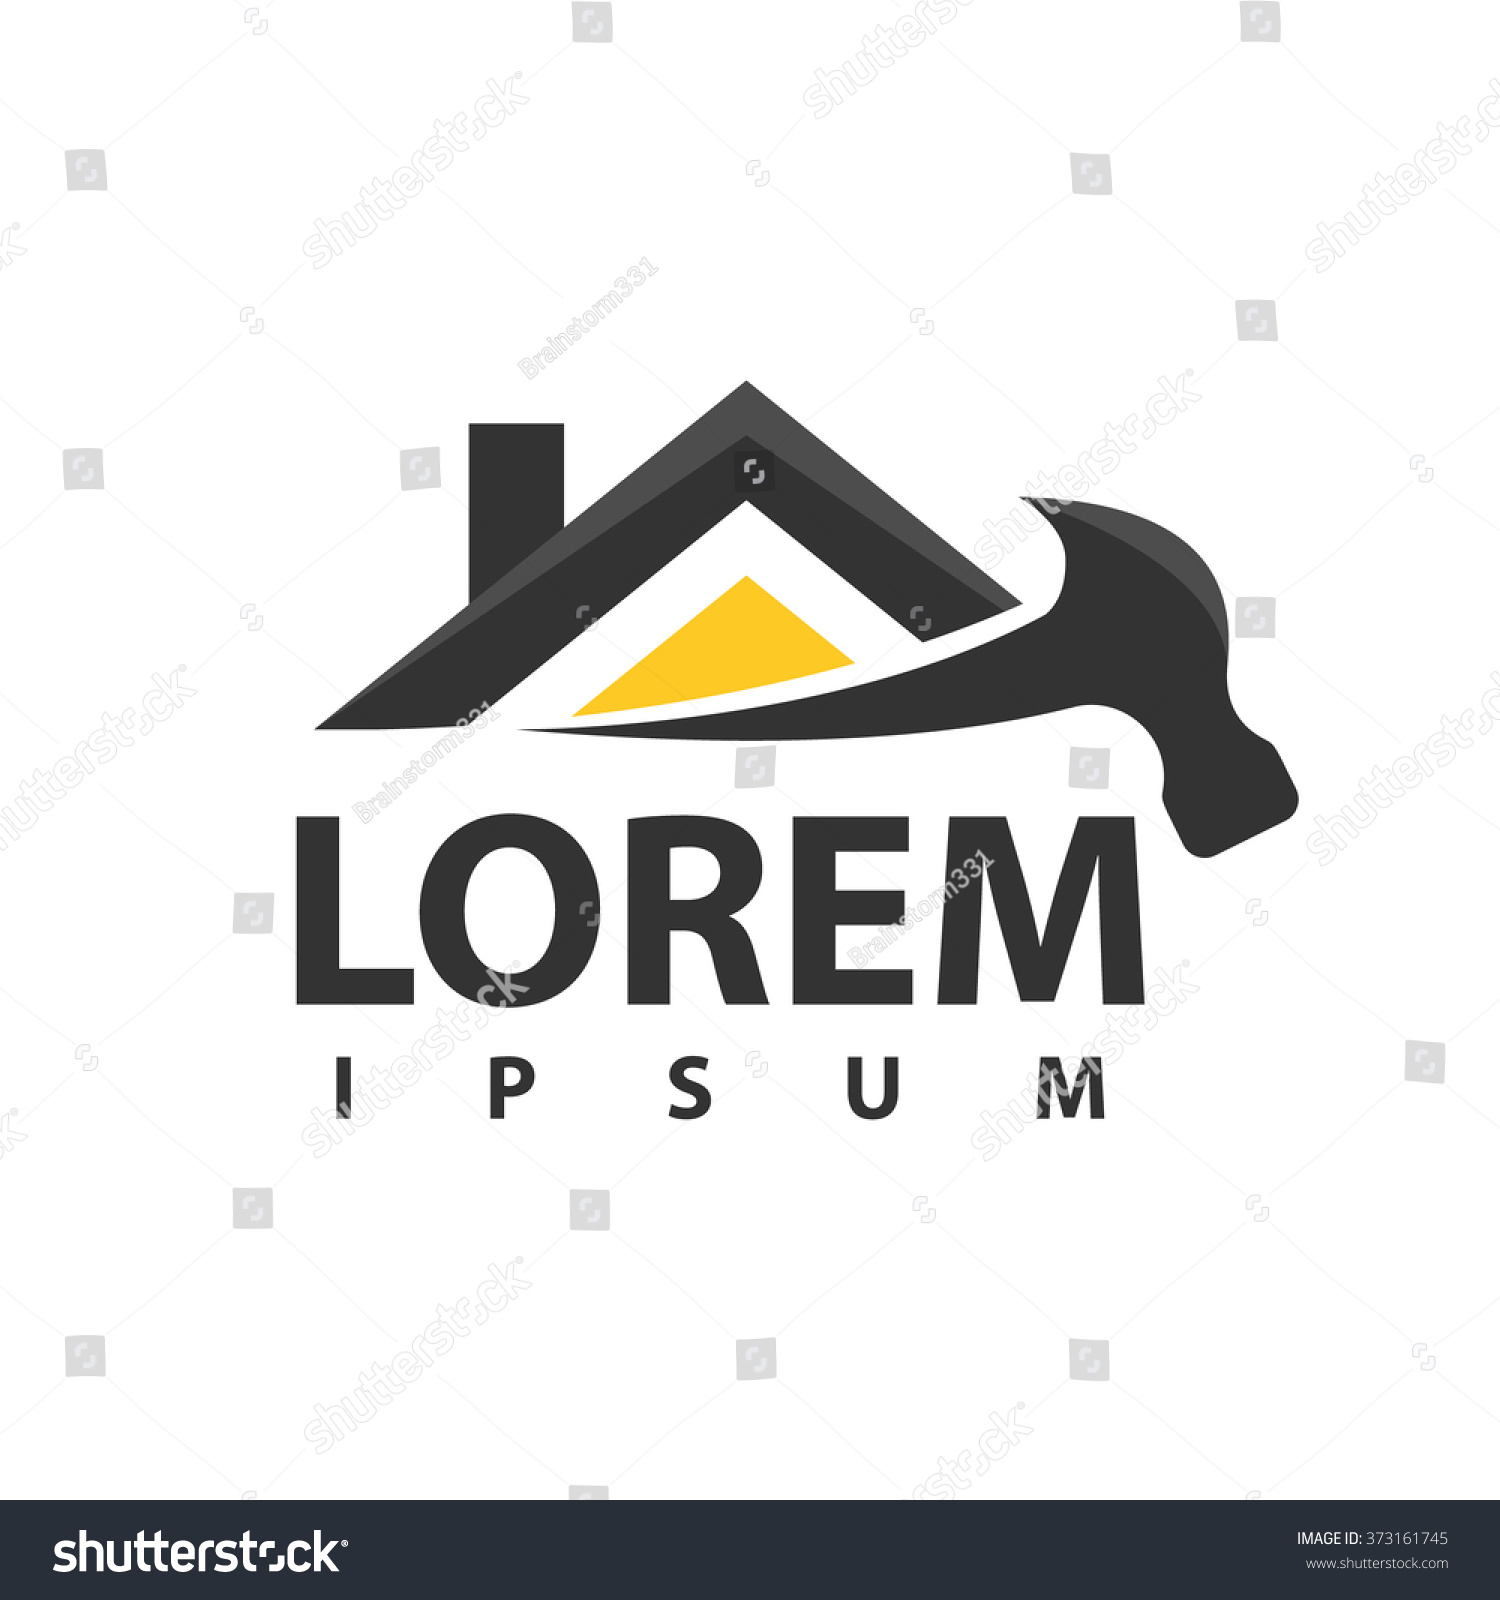 House repair logo tools icon roof stock vector 373161745 for Home improvement logos images